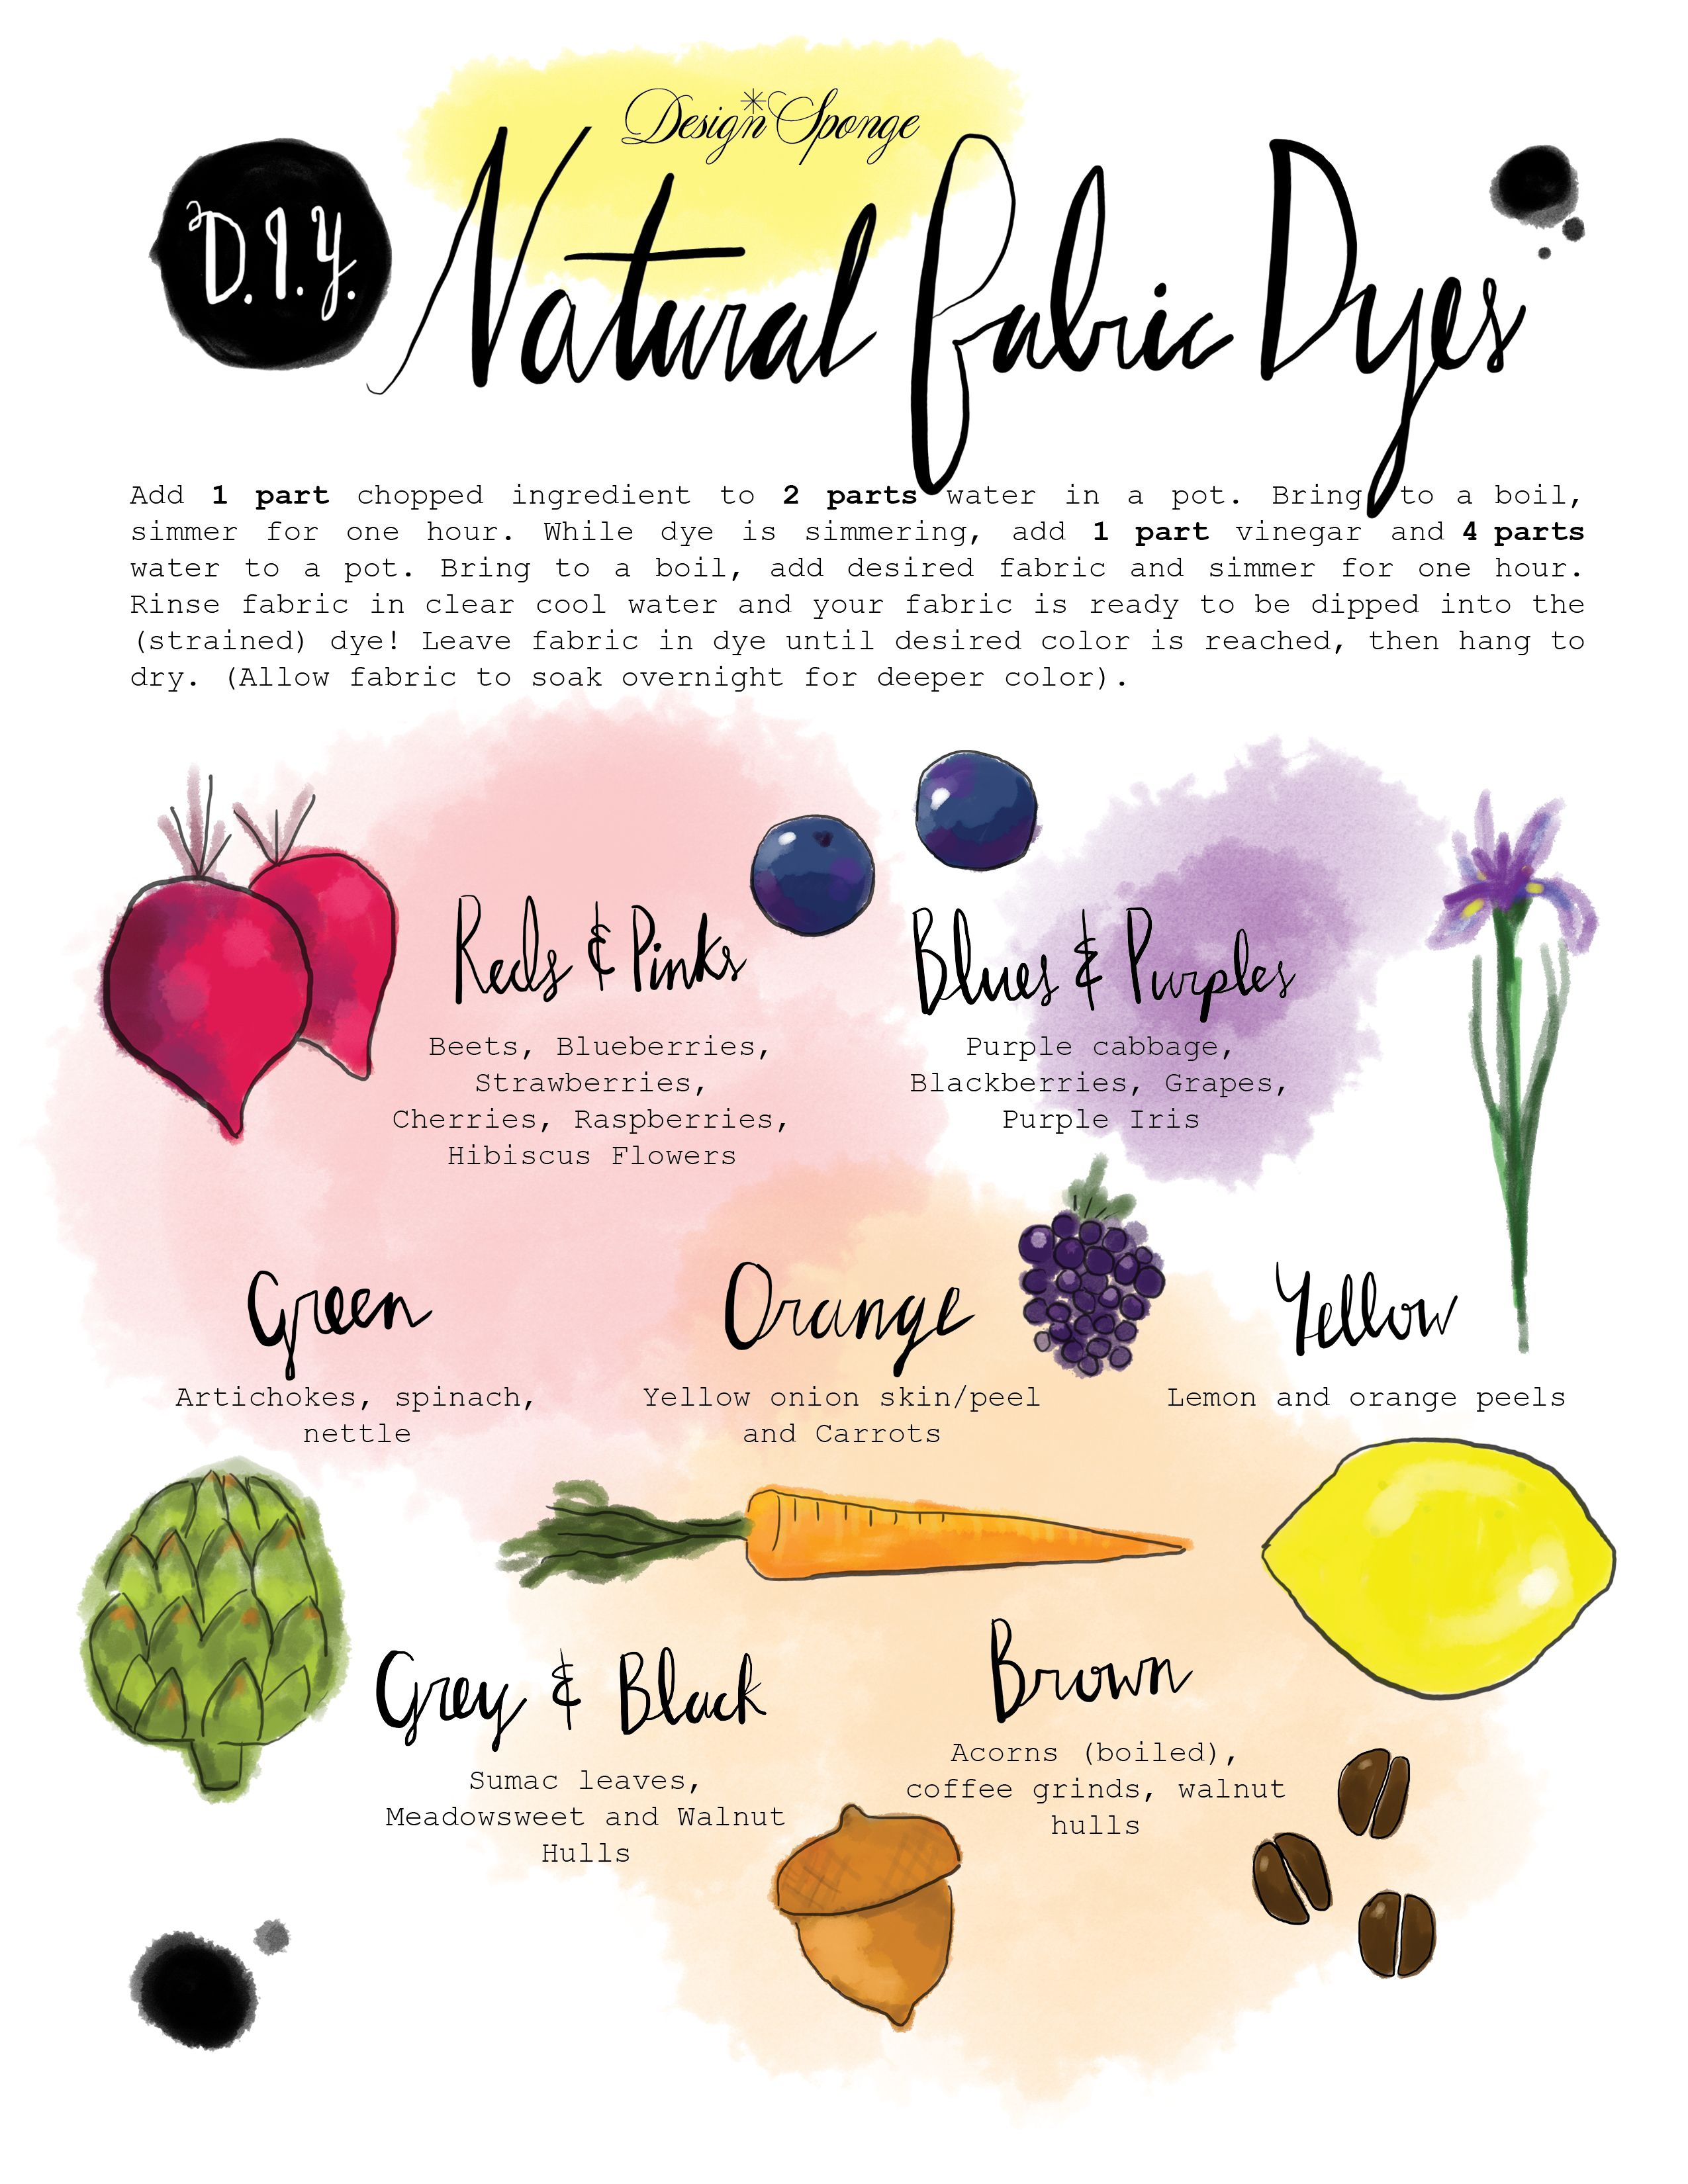 Use Native Plants To Dye Easter Eggs Naturally